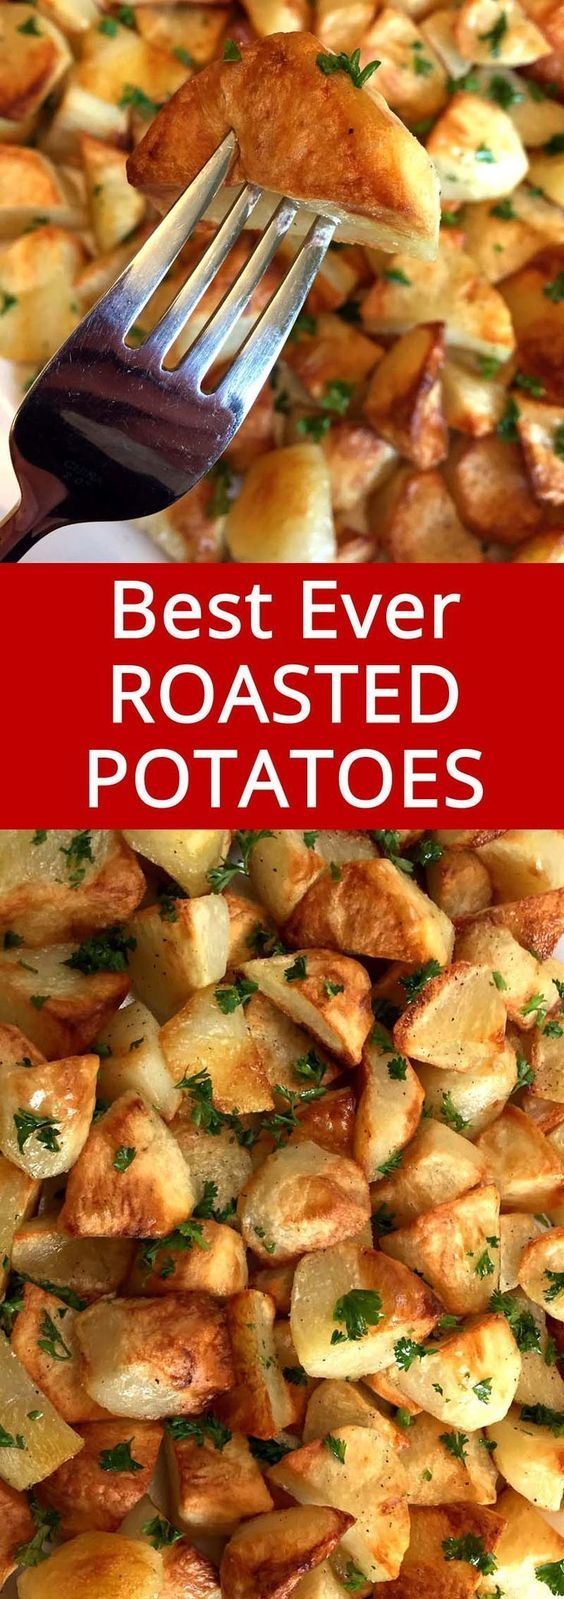 These oven roasted potatoes are amazing! So easy to make, perfectly golden brown and crispy! I love this recipe!